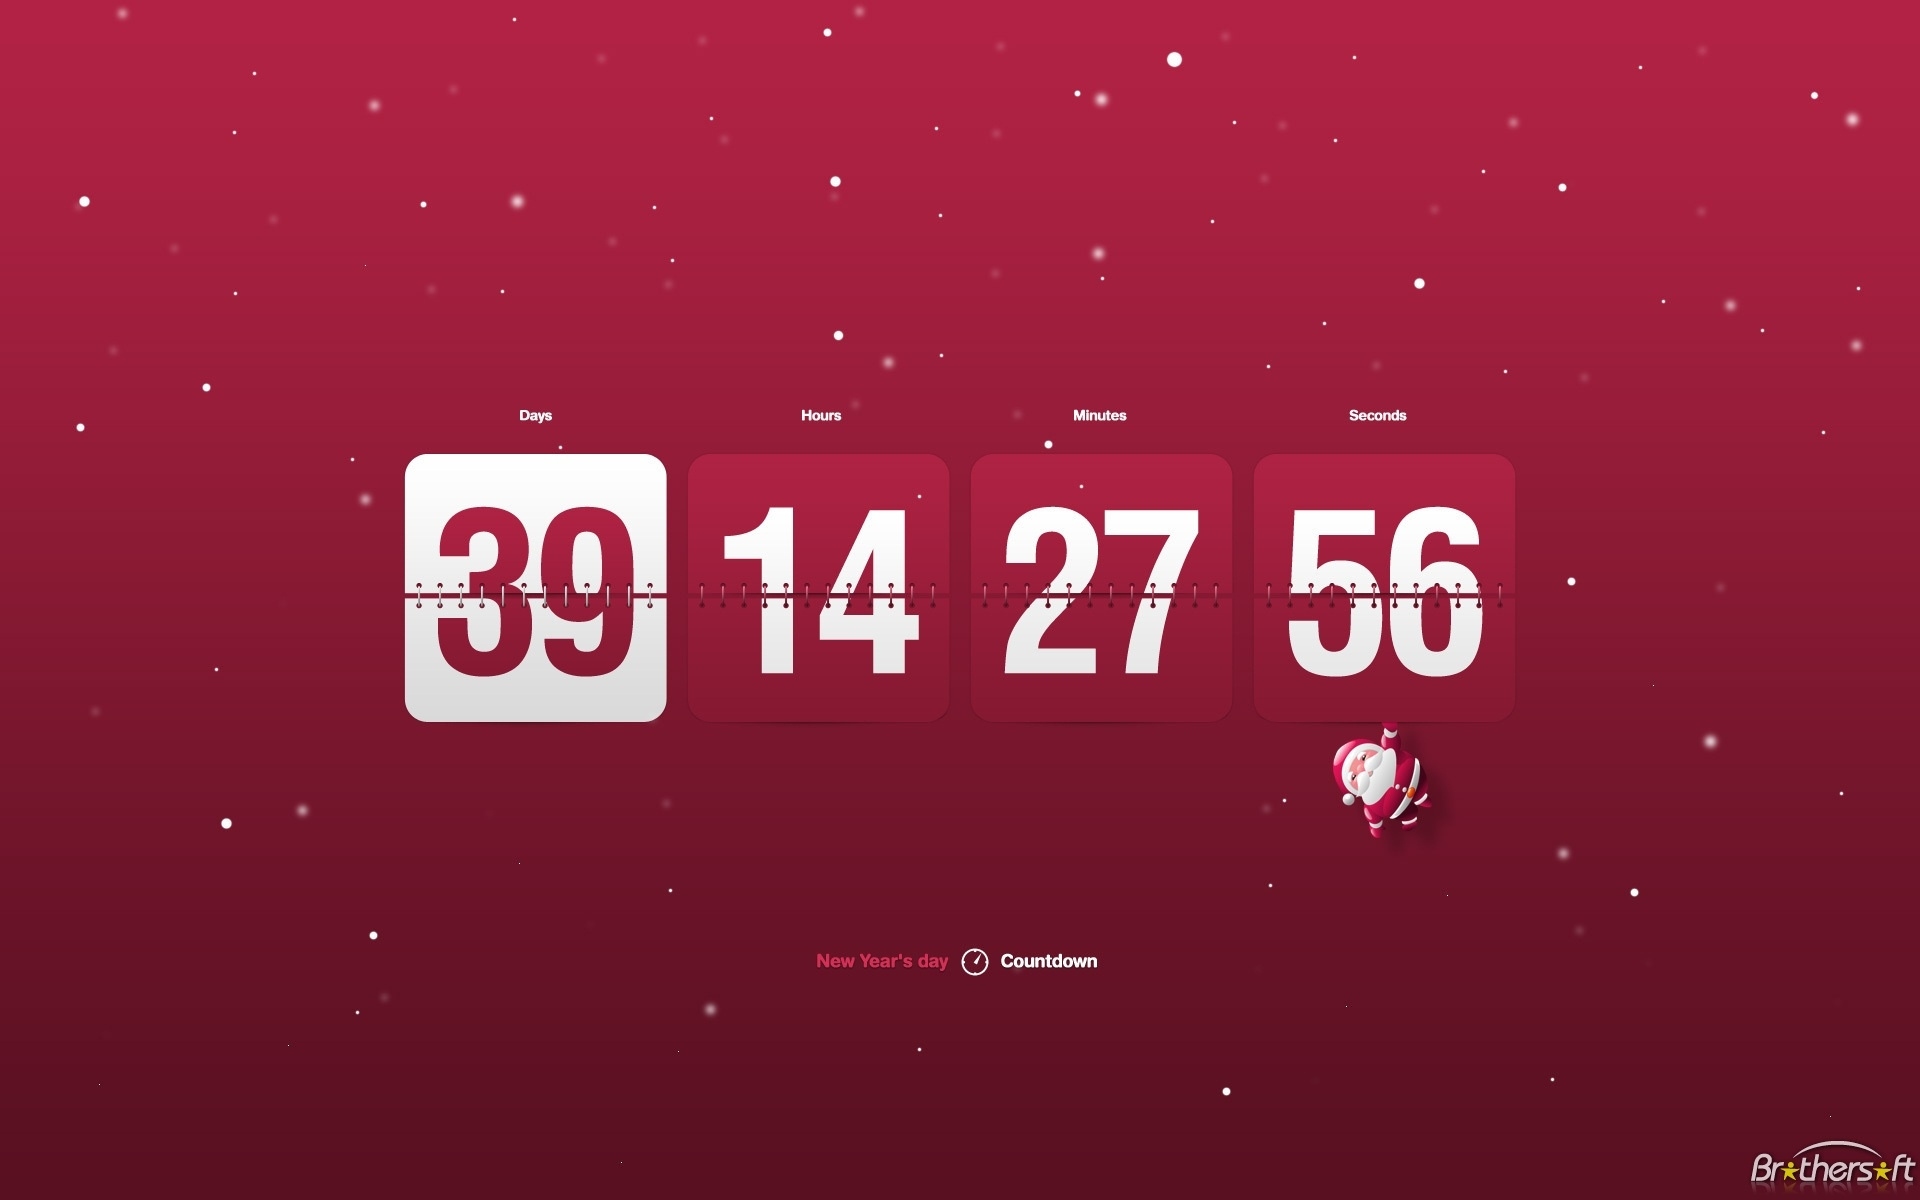 49+] Desktop Wallpaper Countdown Timer On Wallpapersafari_Countdown Calendar For My Desktop